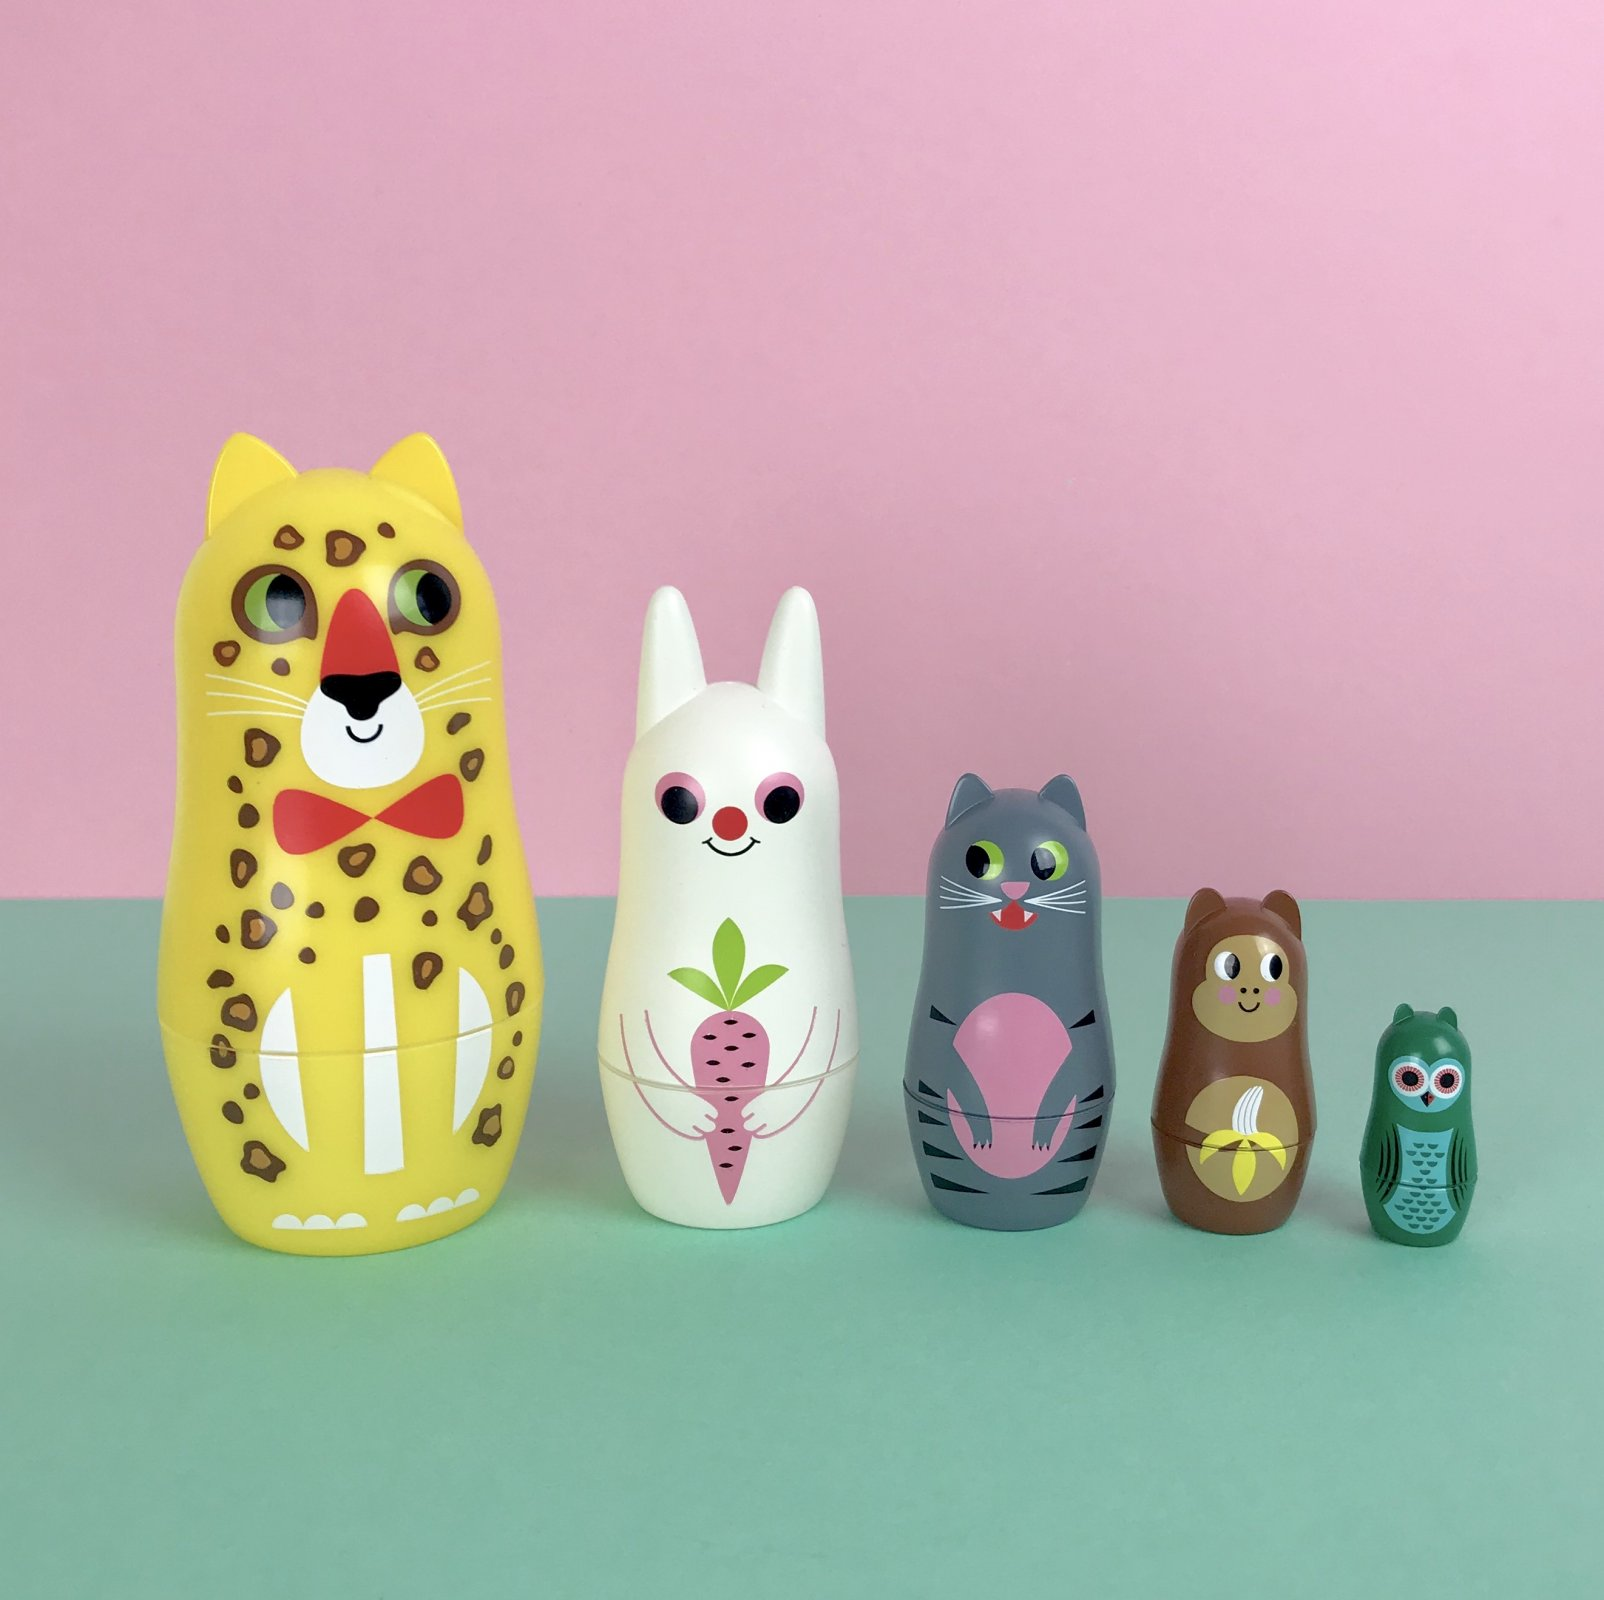 Animal Ears Nesting Dolls by OMM design